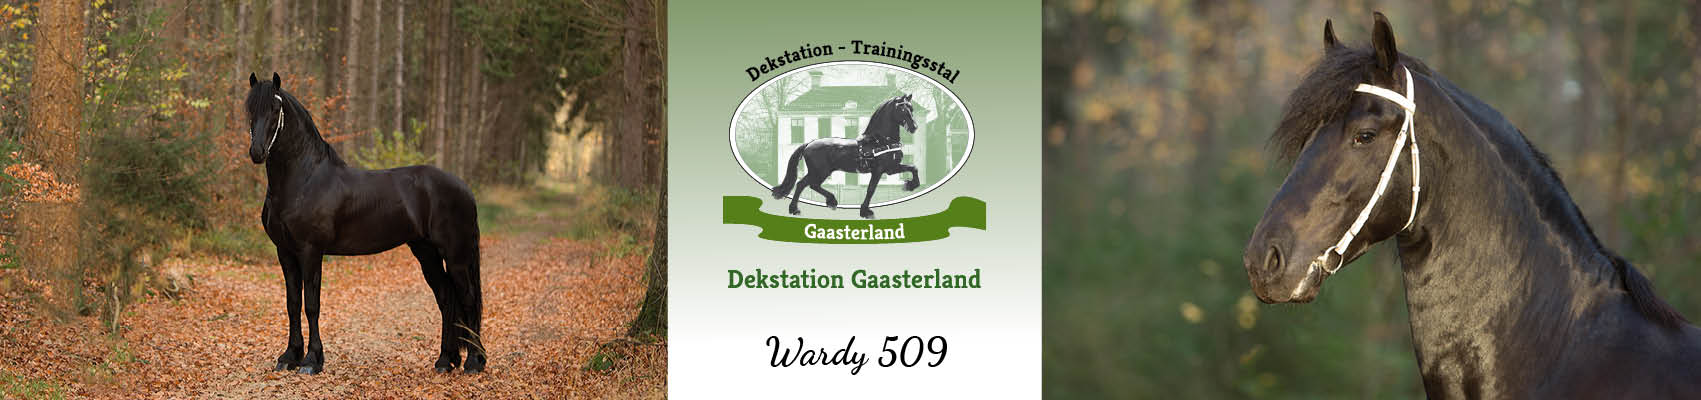 slider-dekstation-wardy